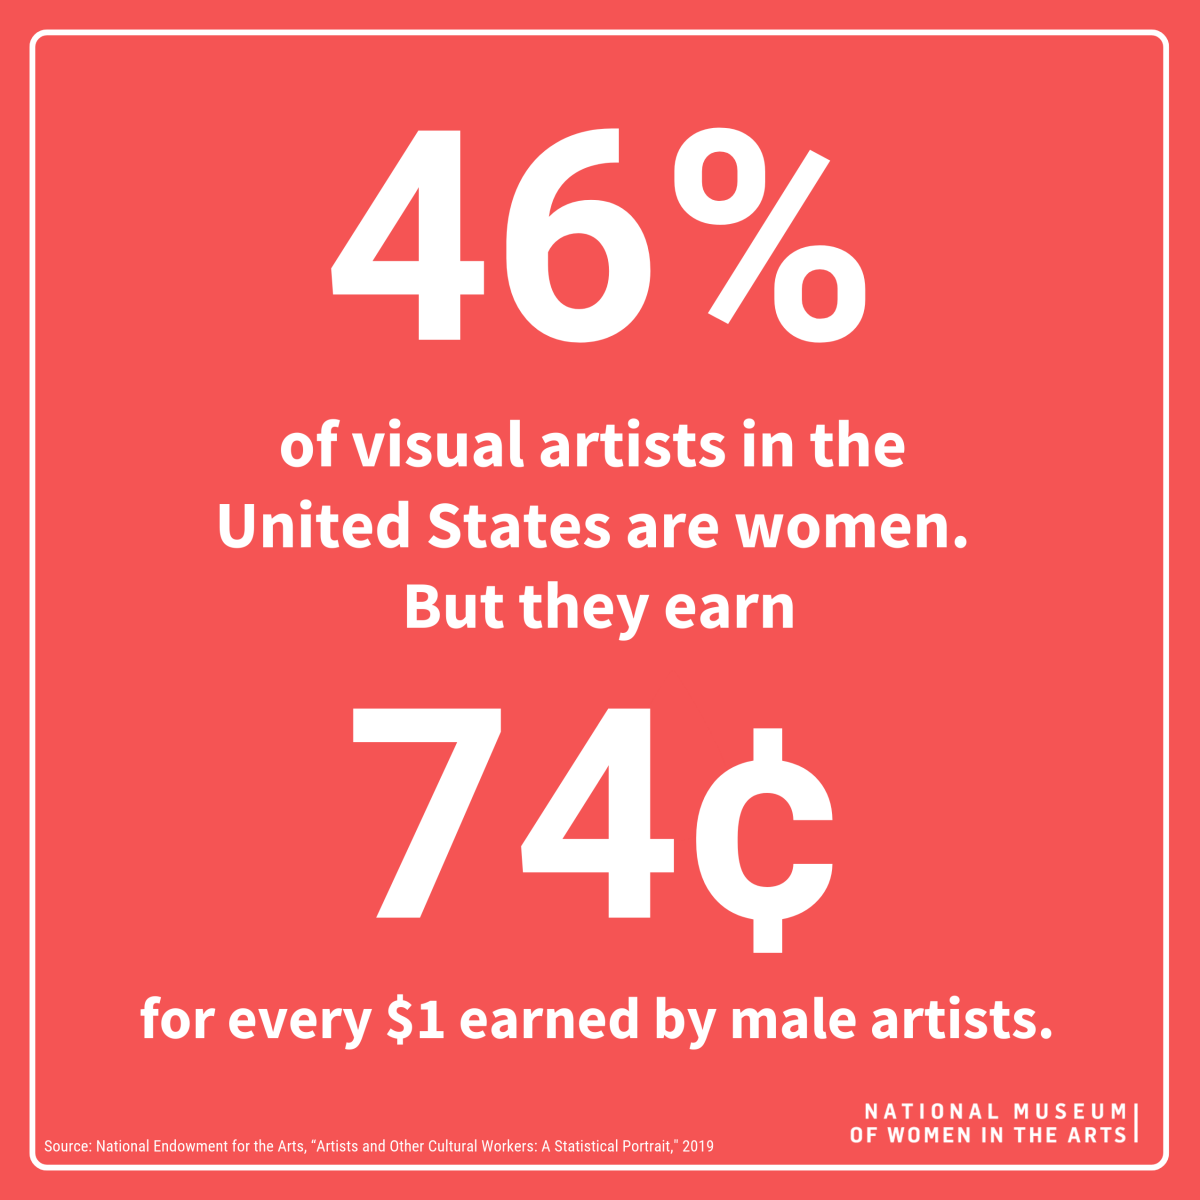 Infographic displays text '46% of visual artists in the US are women. But they earn 74 cents for every $1 earned by male artists.